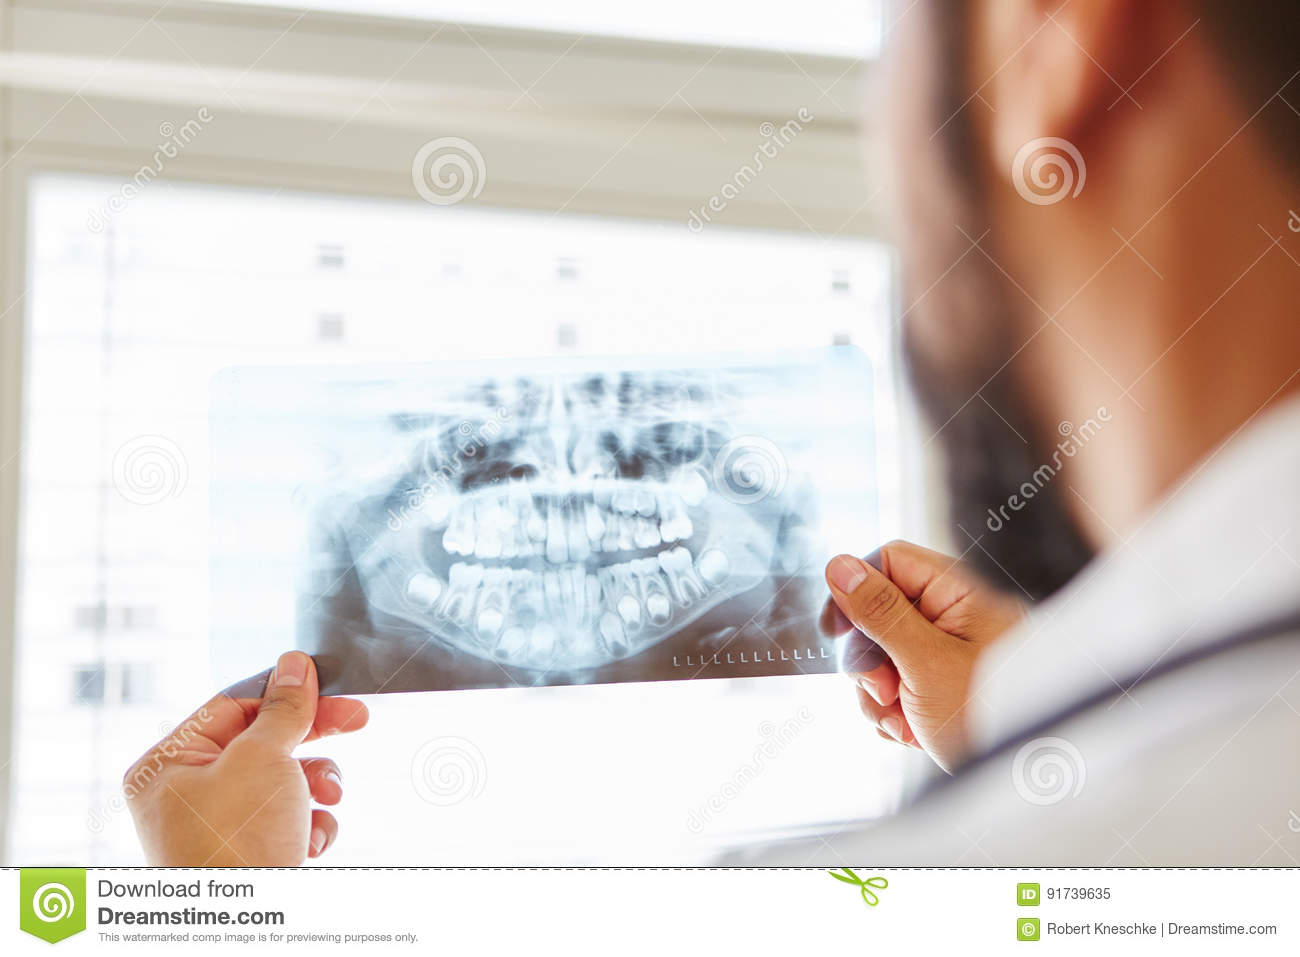 Doctor holding x-ray image from jaw